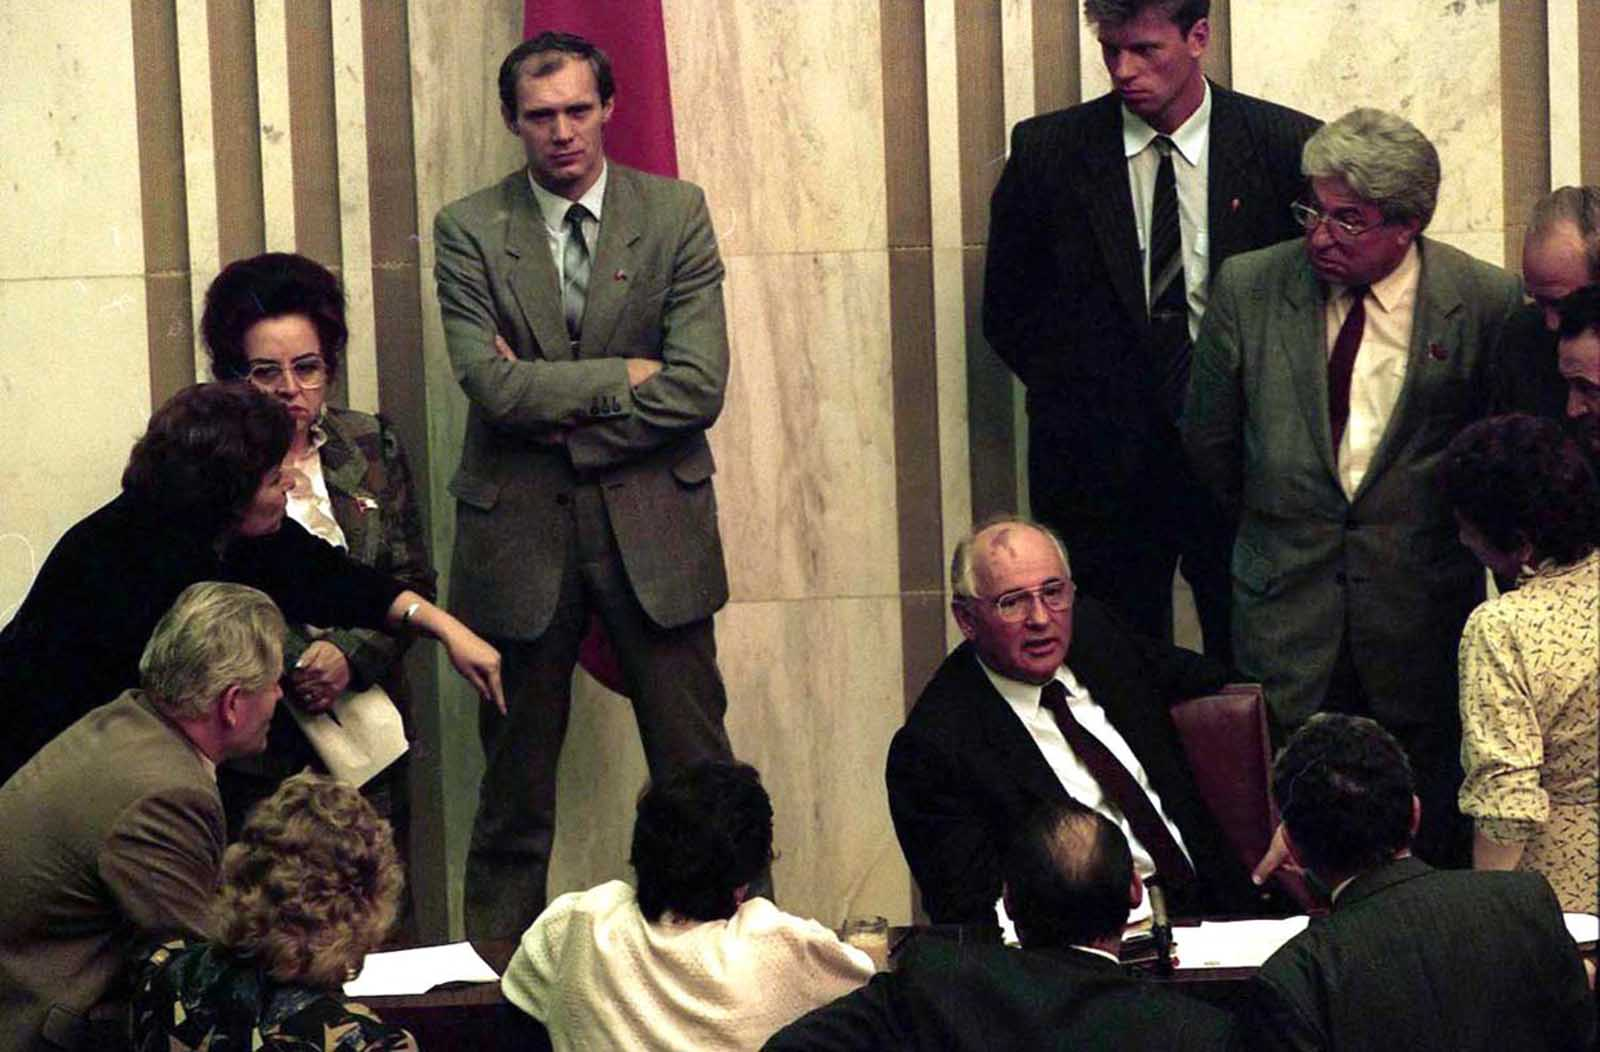 President Mikhail Gorbachev, in the Soviet Parliament right after his return from being under house arrest during the August, 1991 coup.